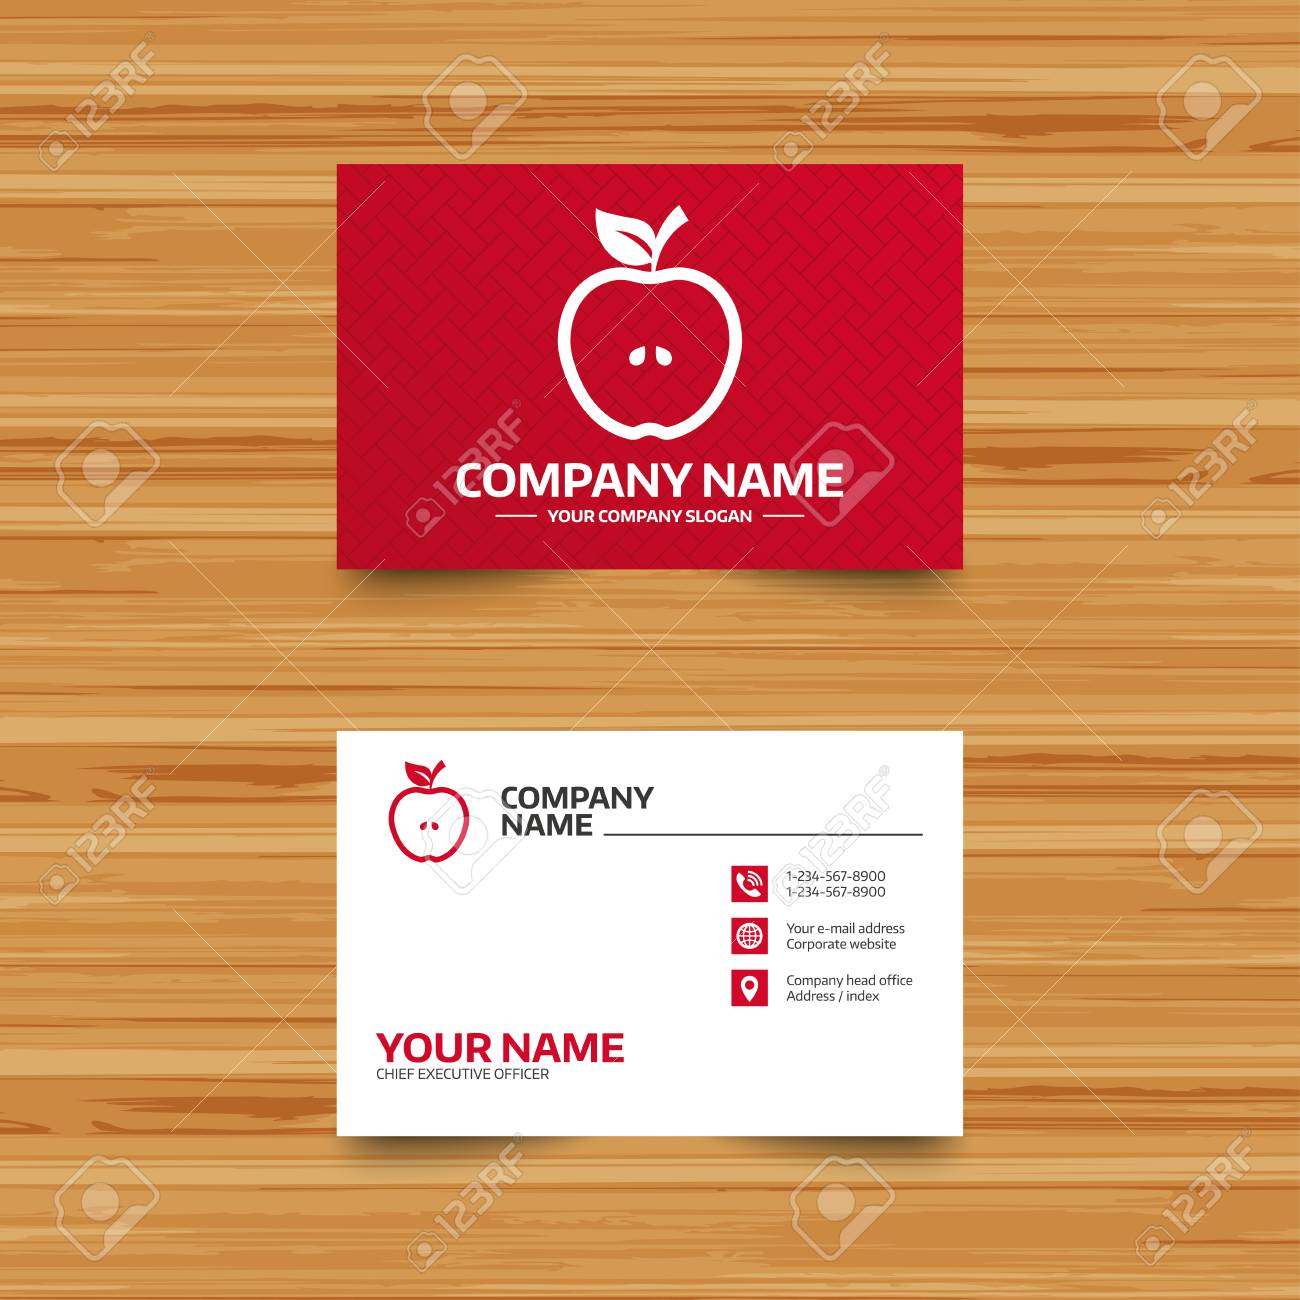 Business card template apple sign icon fruit with leaf symbol business card template apple sign icon fruit with leaf symbol phone globe reheart Choice Image